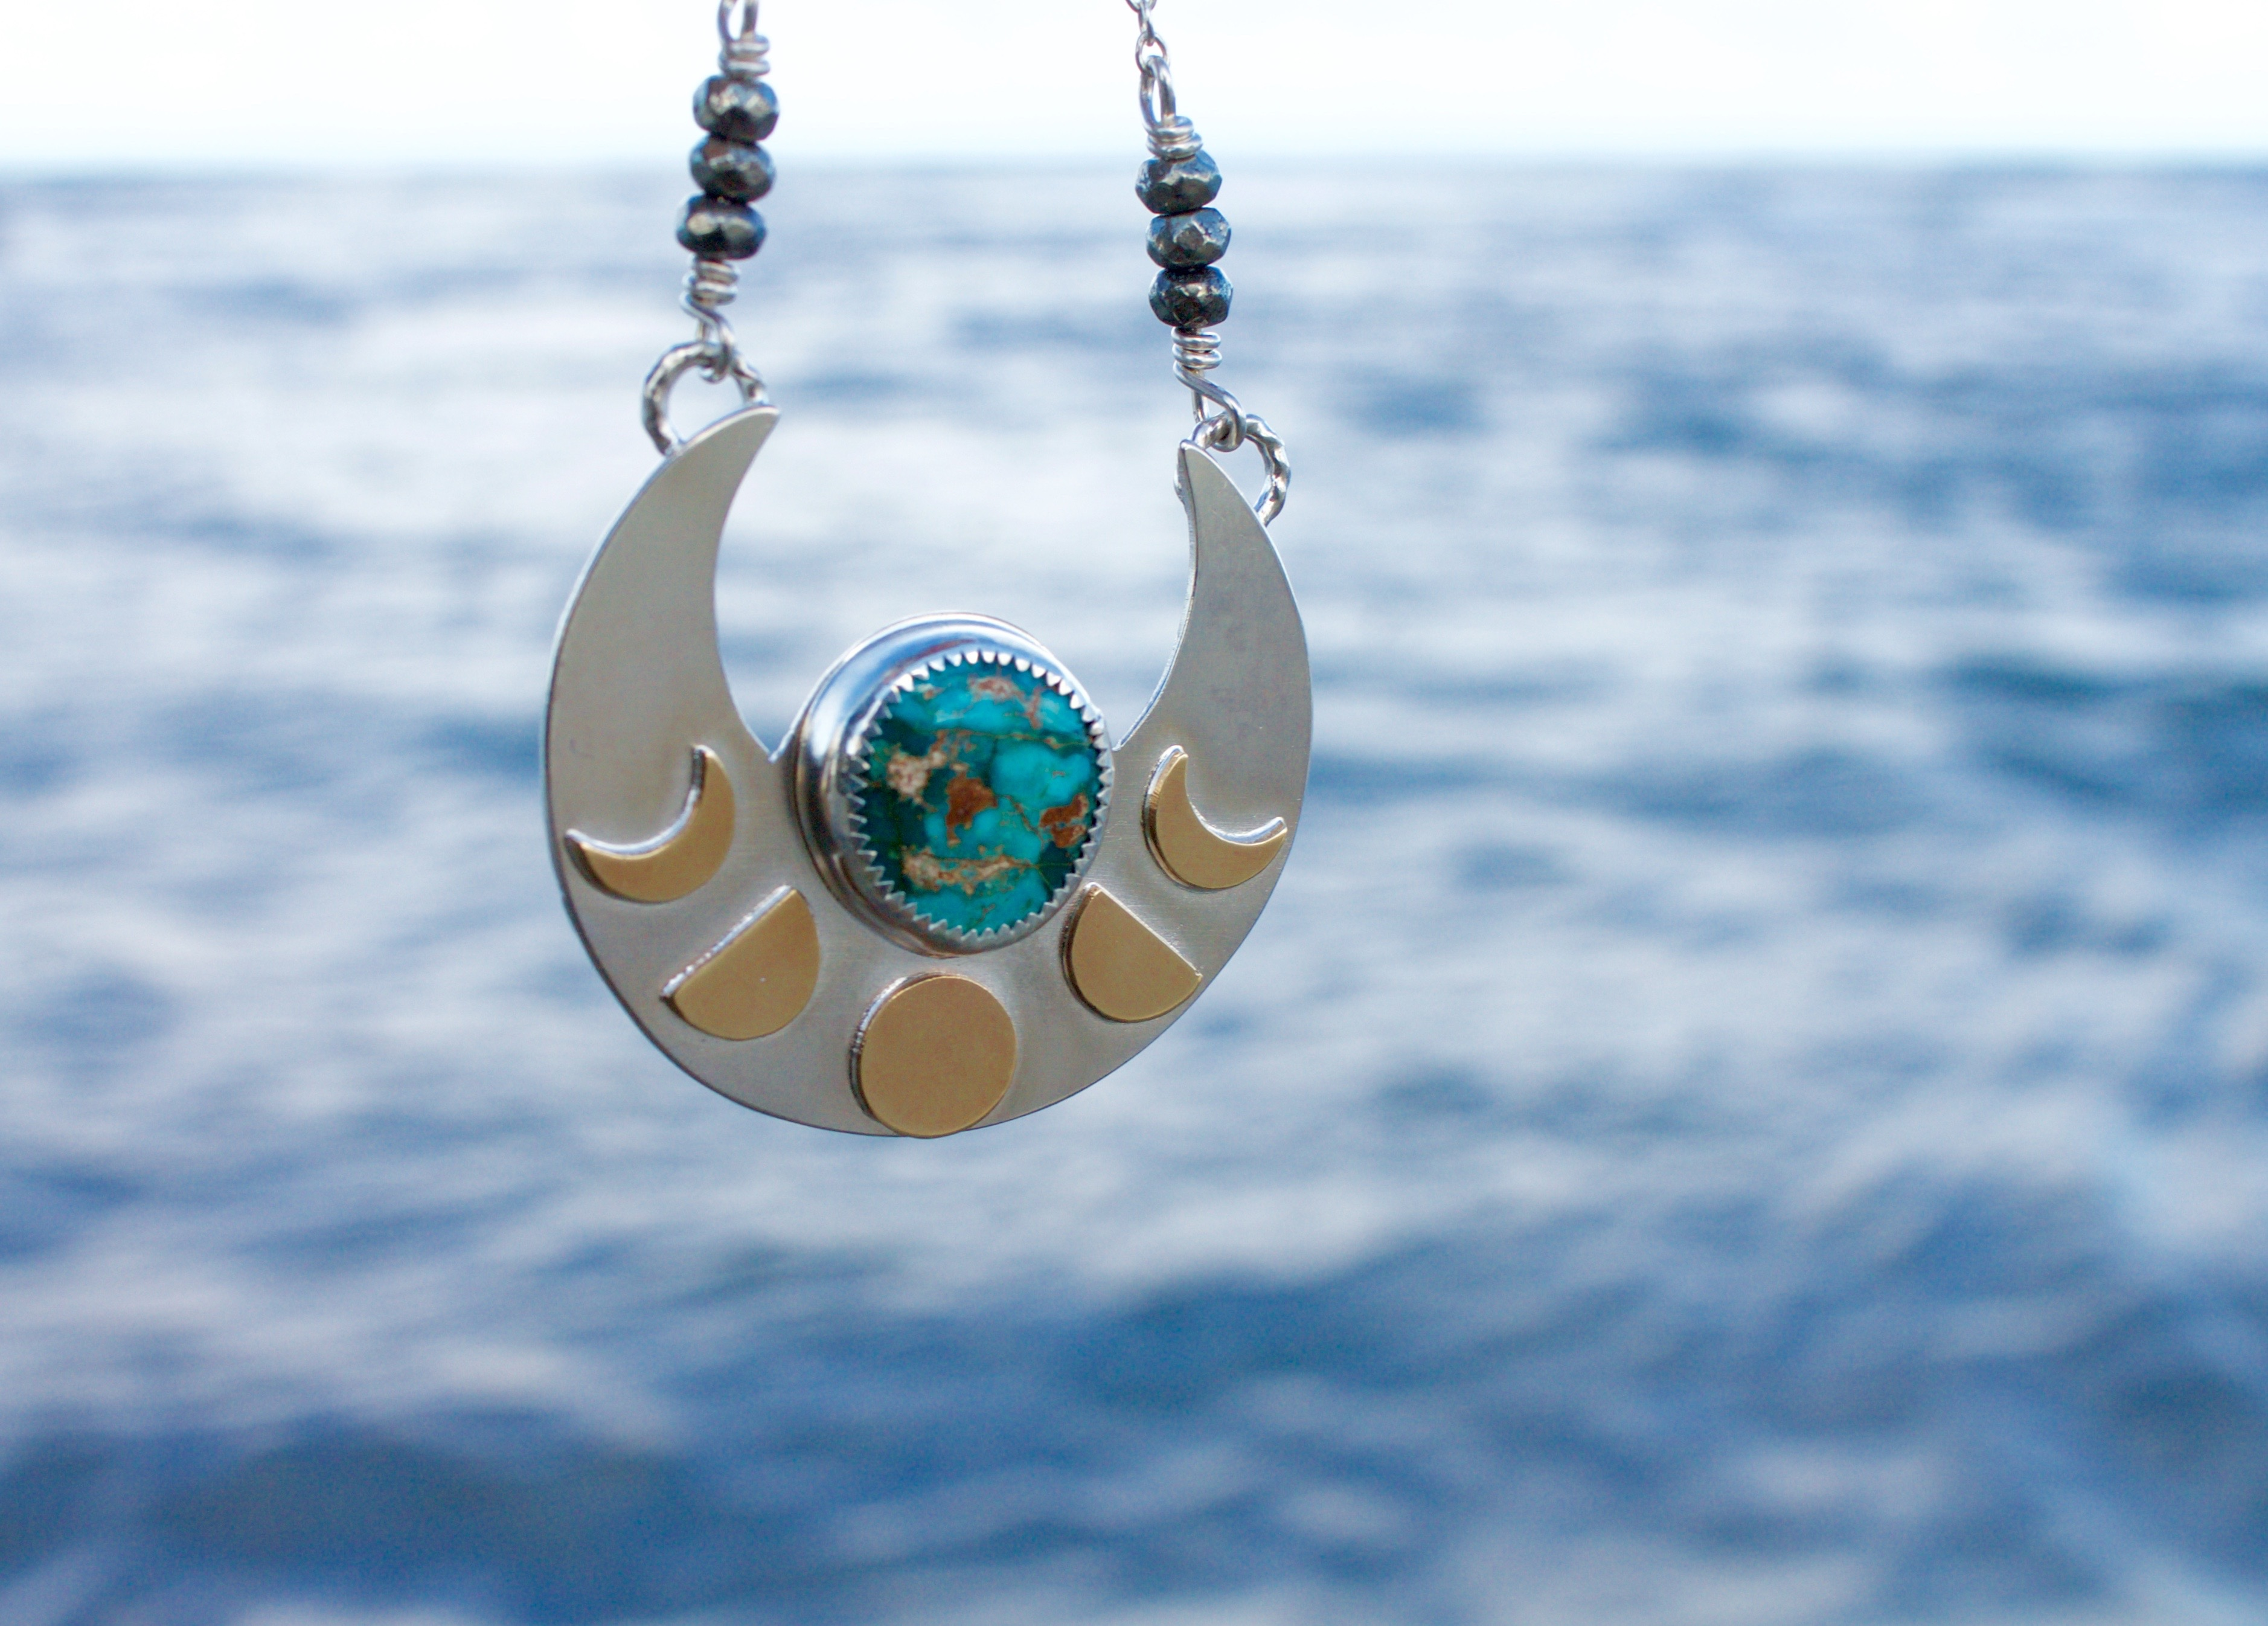 mermaid by hand necklace